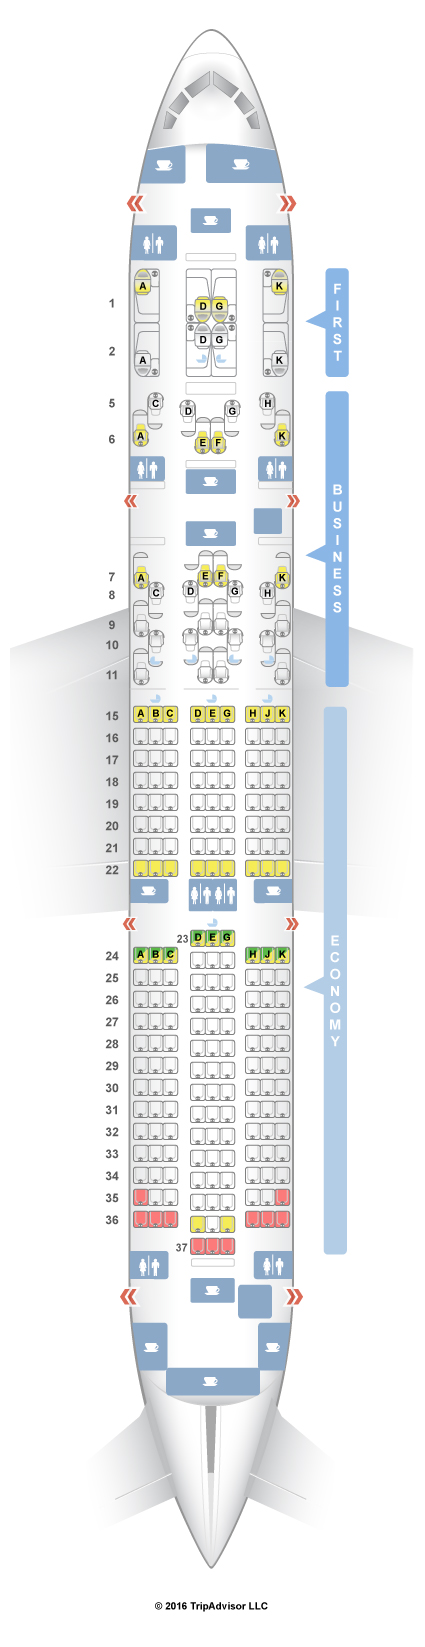 American Airlines Aircraft 789 Seat Map - The Best and